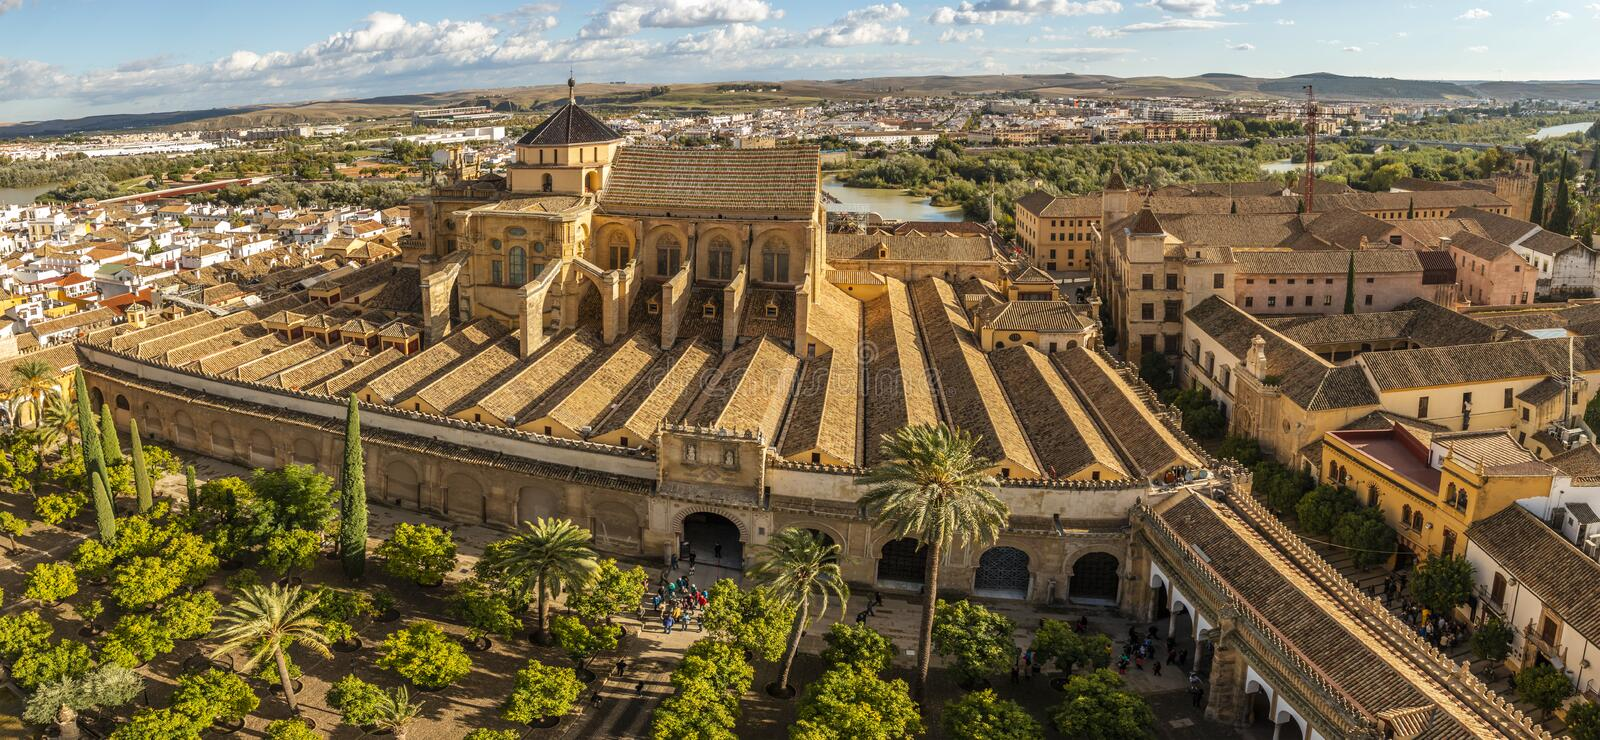 Old amazing Moorish Mosque Cathedral from above in Cordoba, Spain royalty free stock photo